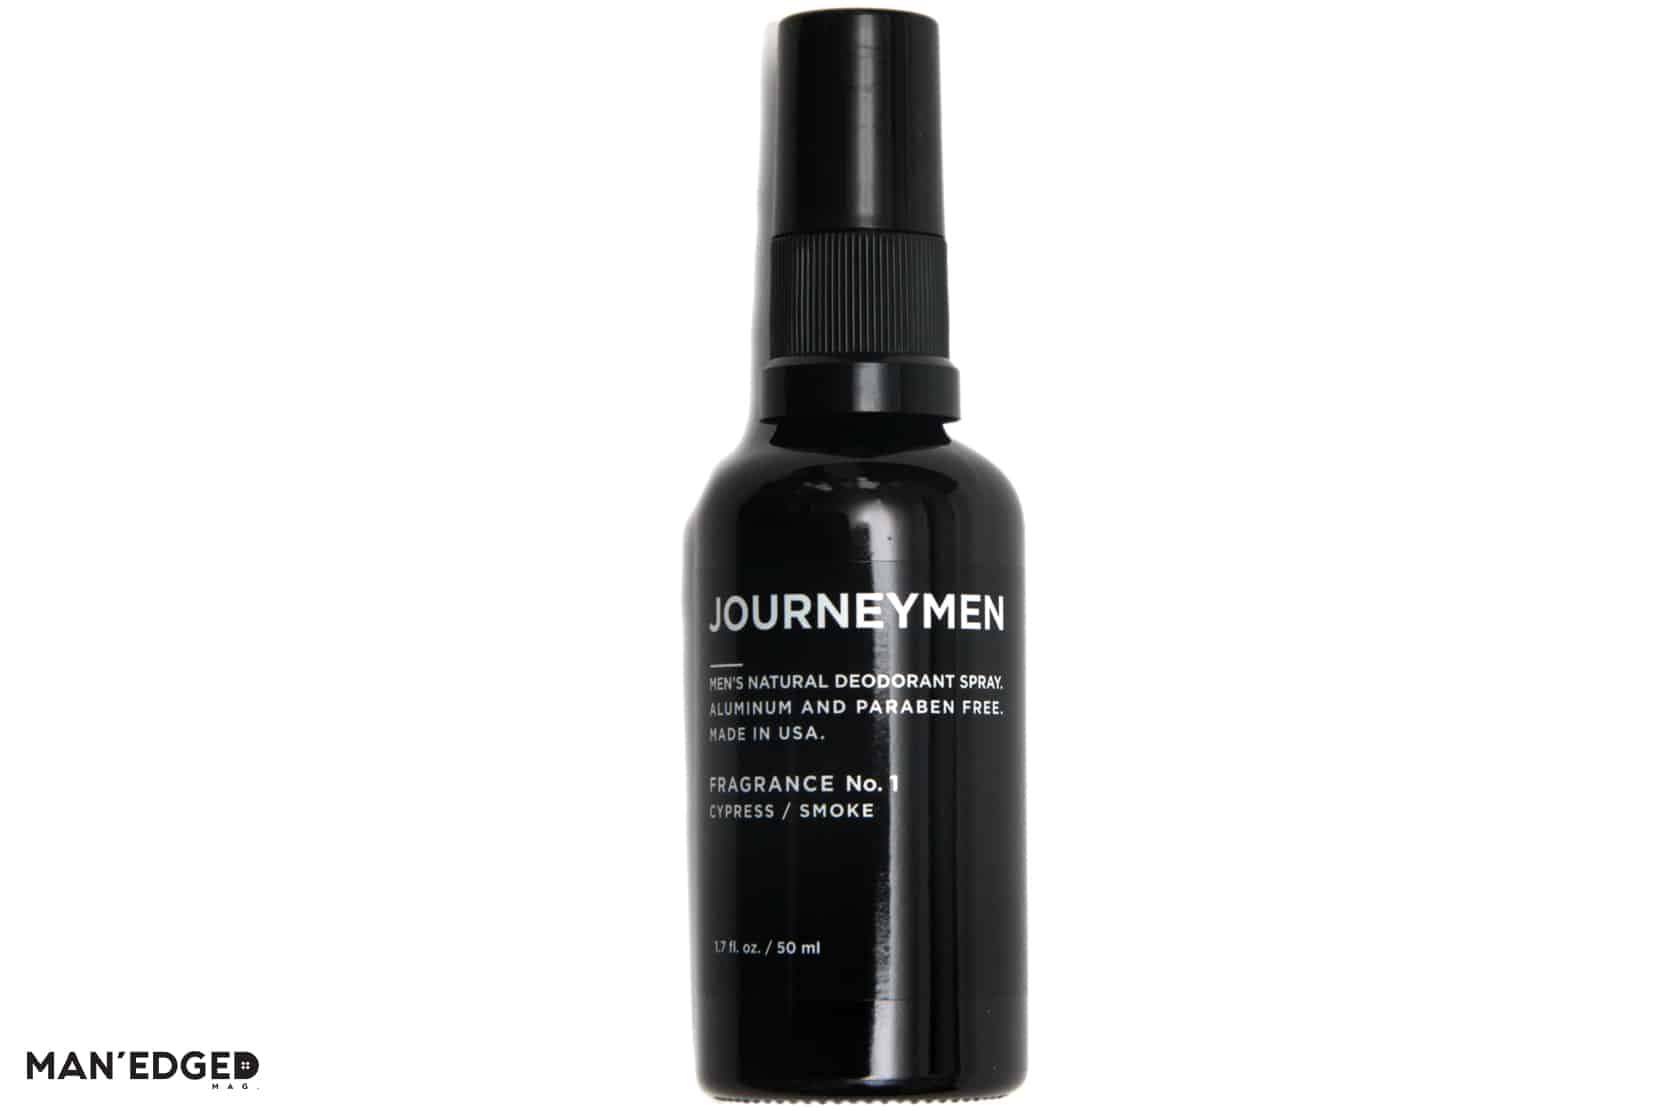 Gift Ideas for the journeyman featuring body deodorant spray by Journeymen